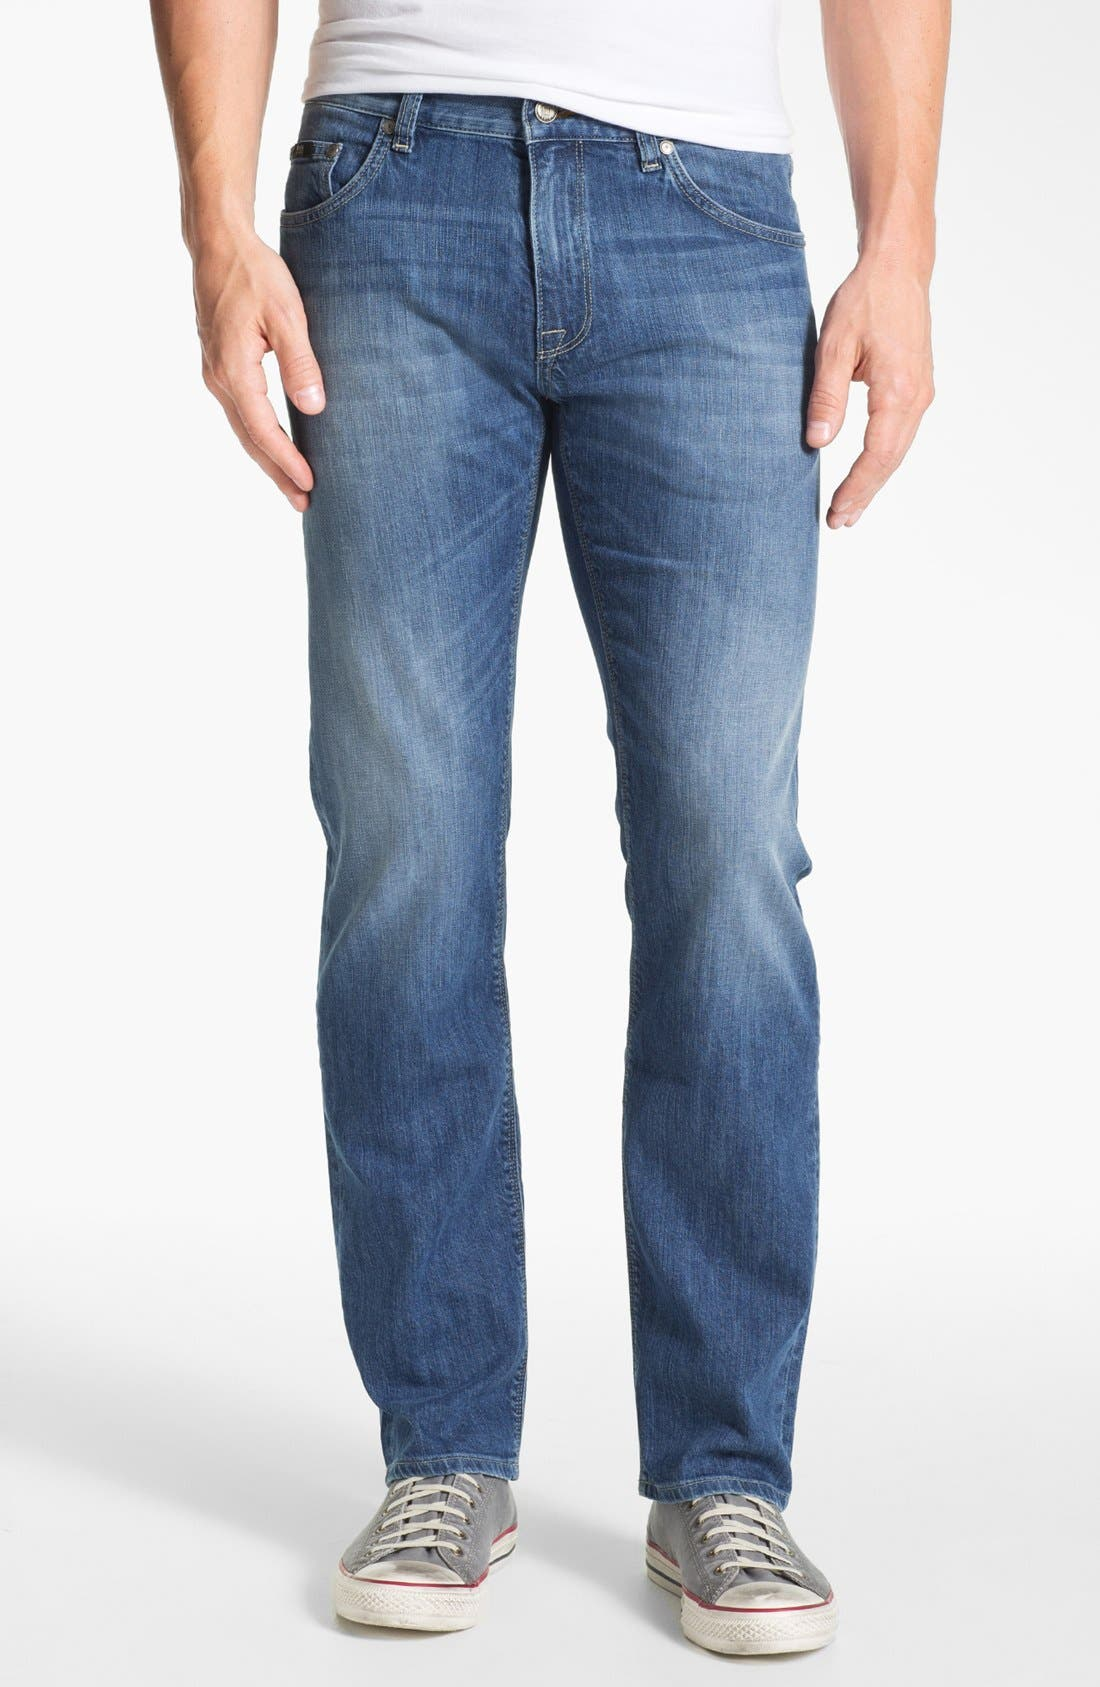 Alternate Image 1 Selected - BOSS HUGO BOSS 'Maine' Straight Leg Regular Fit Jeans (Dark Used)